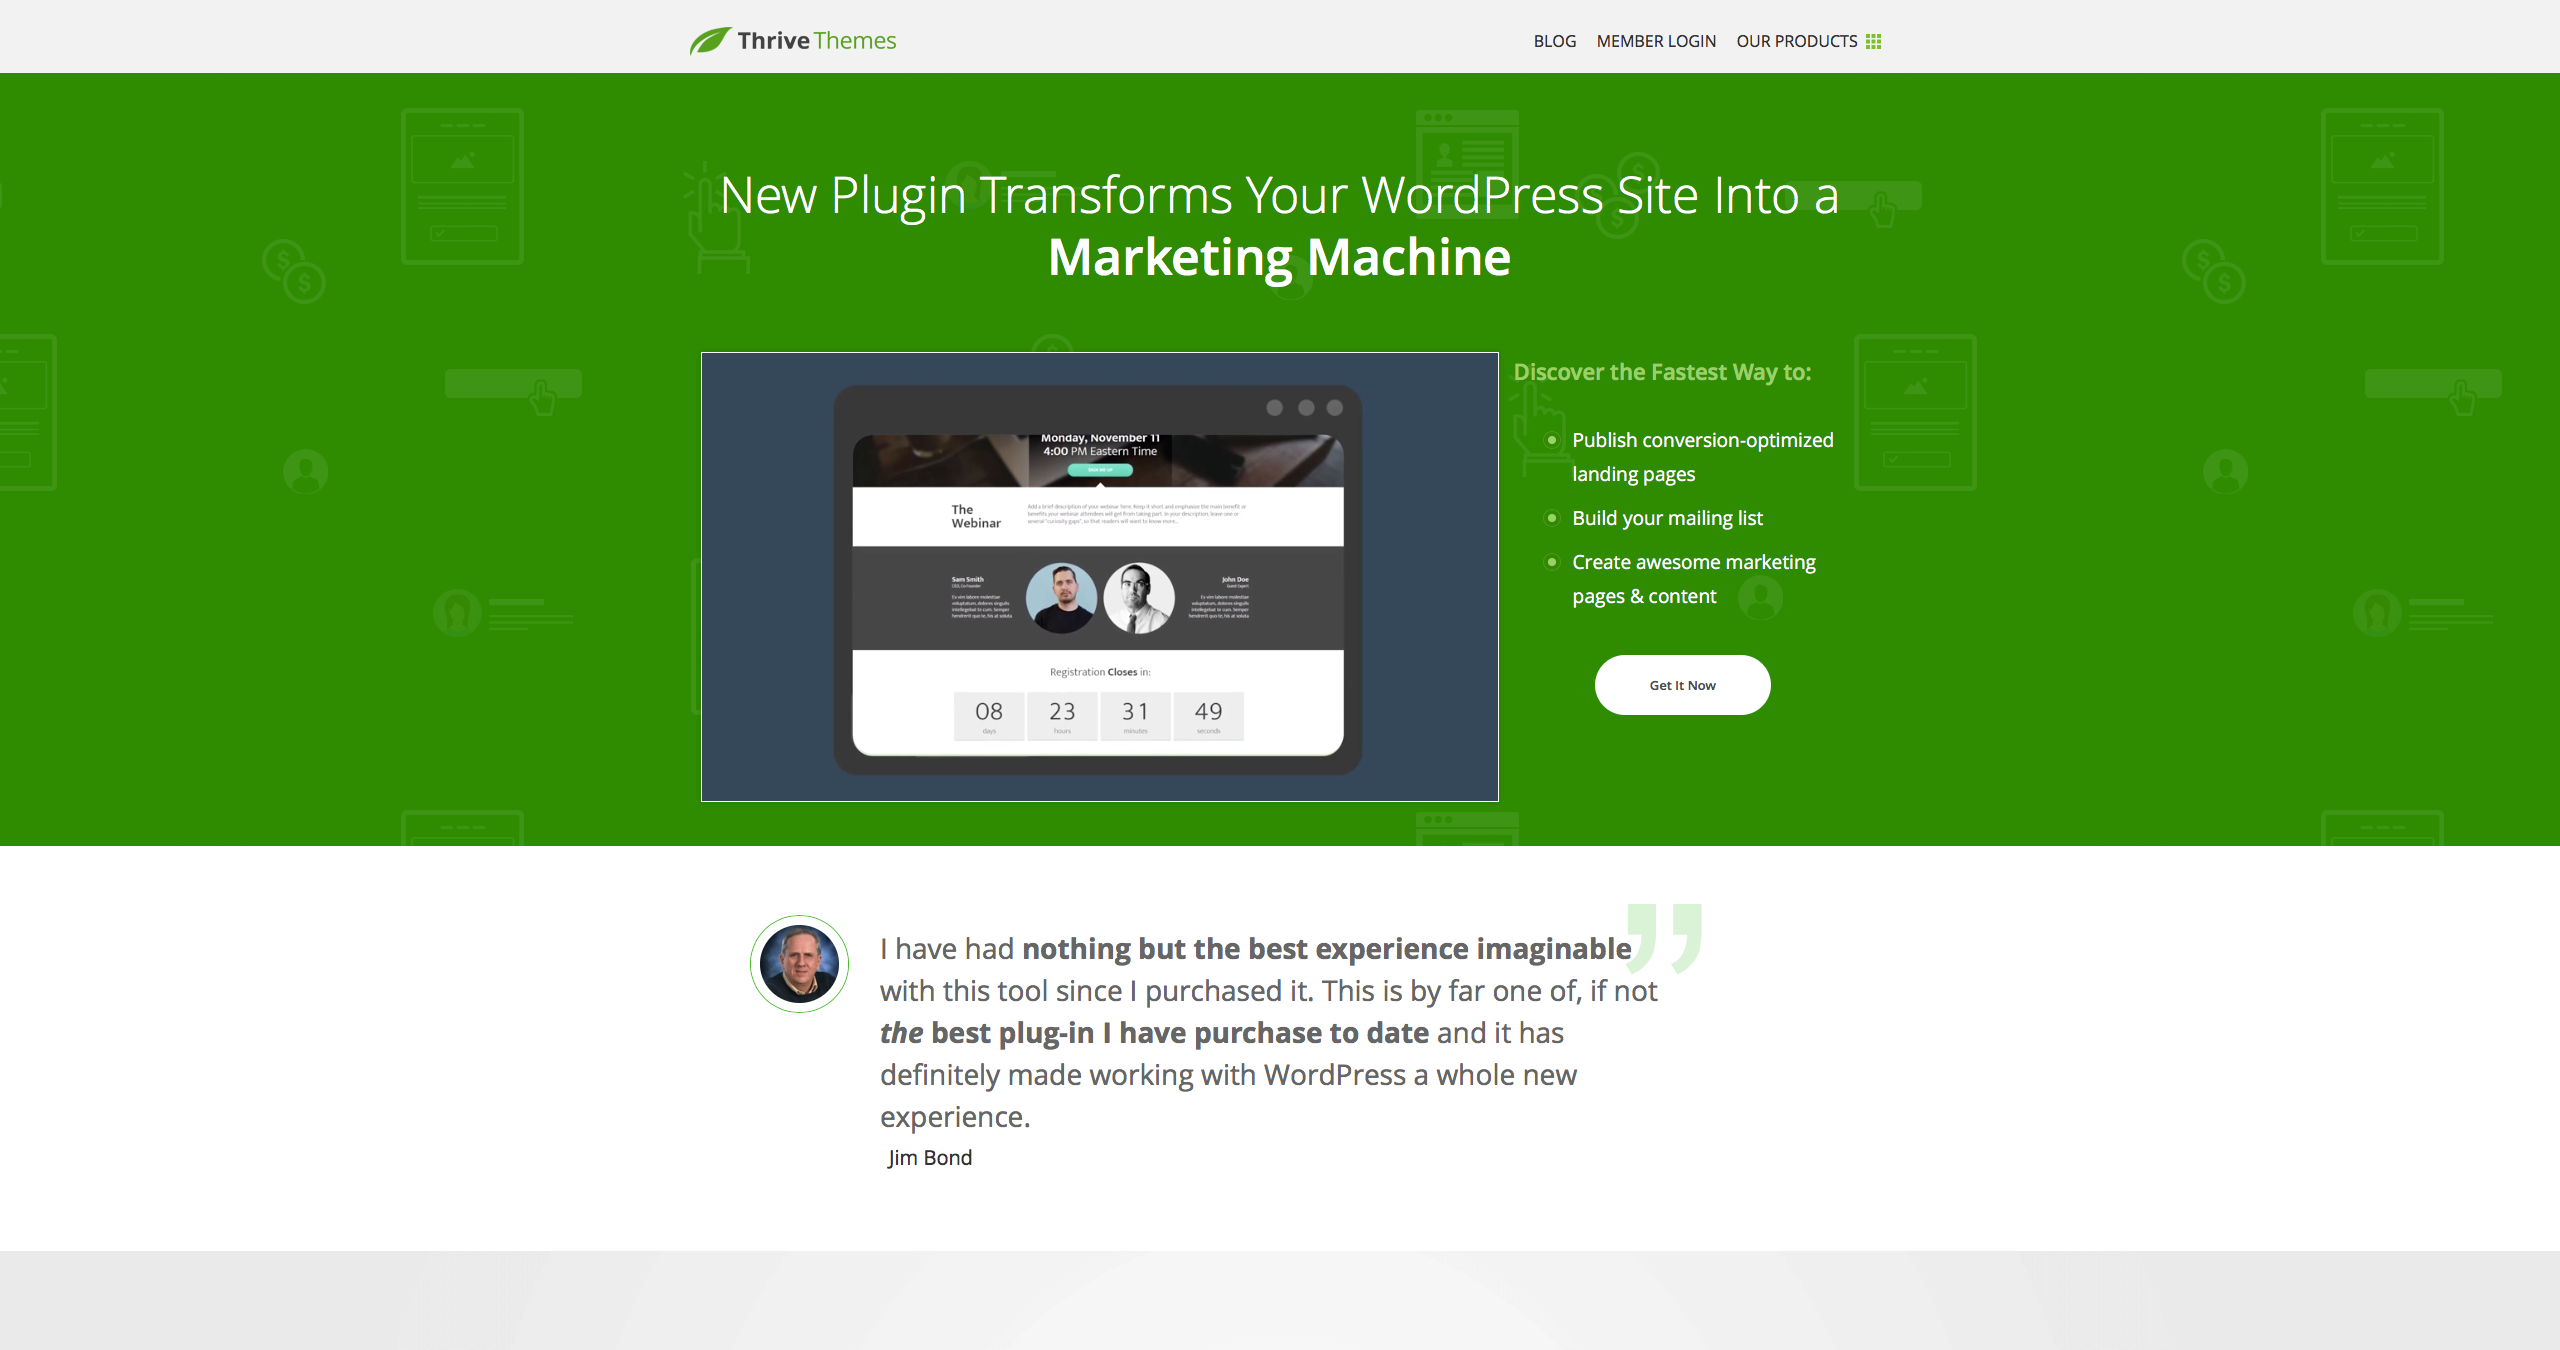 ThriveThemes landing page builder